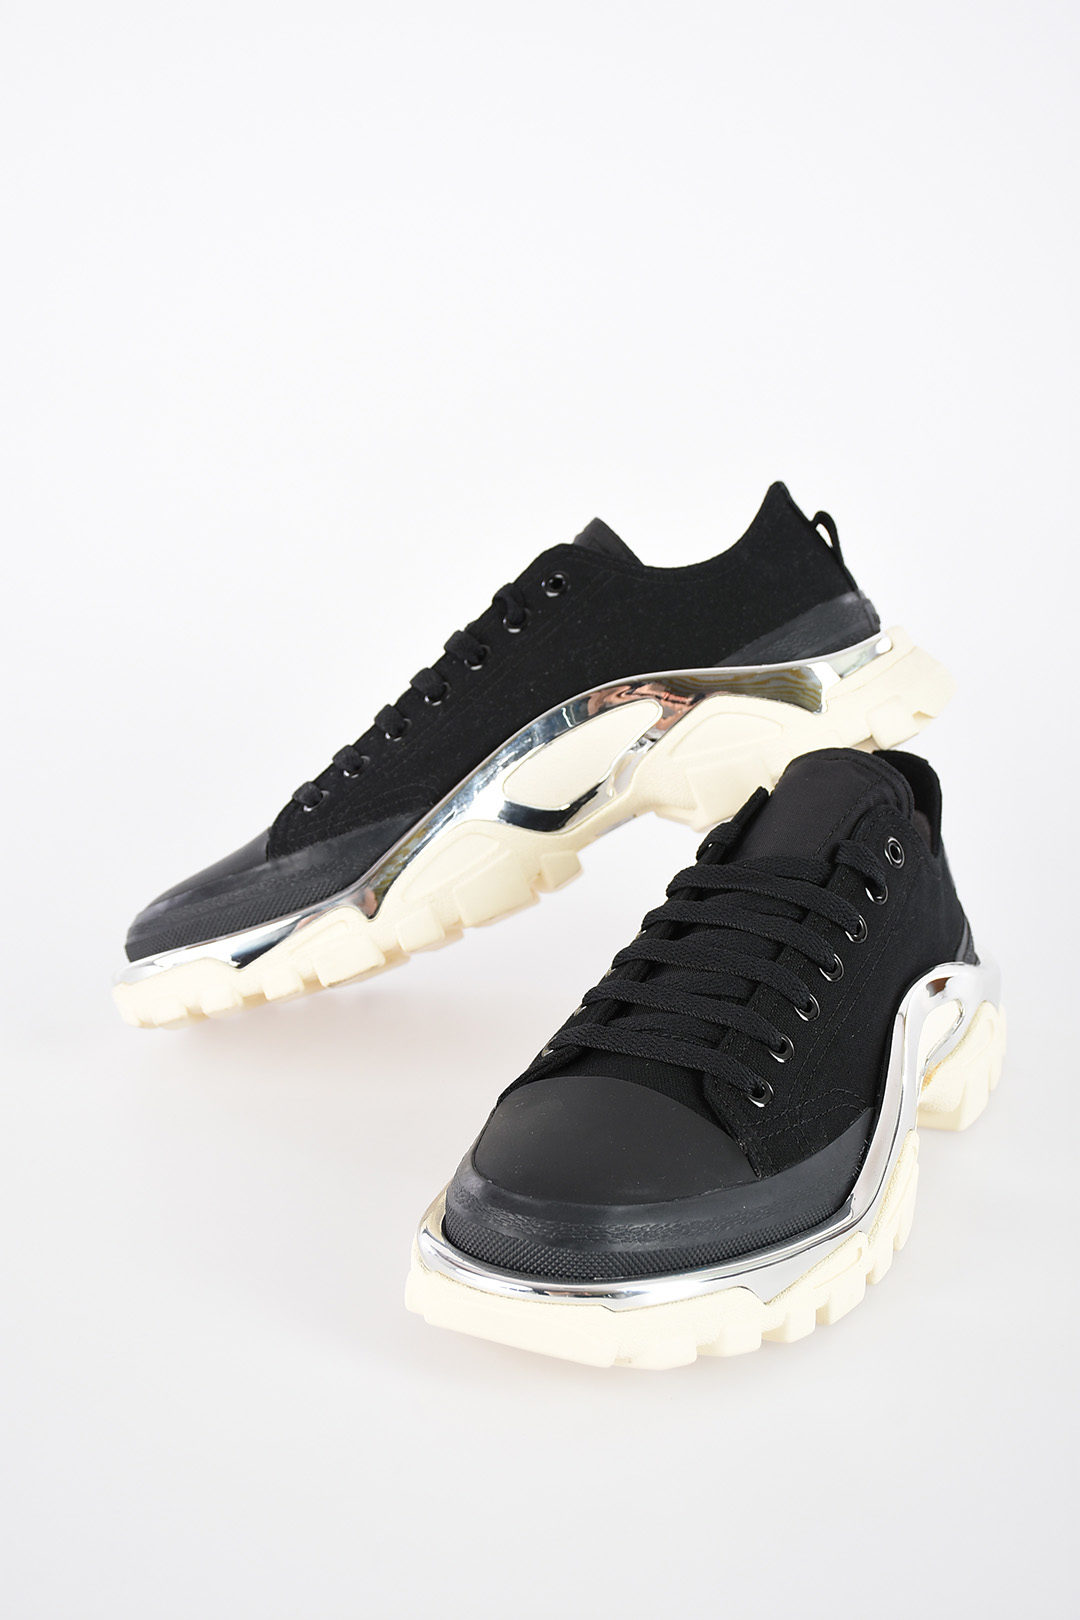 08ccfd878c9 Adidas RAF SIMONS Sneakers DETROIT RUNNER men - Glamood Outlet